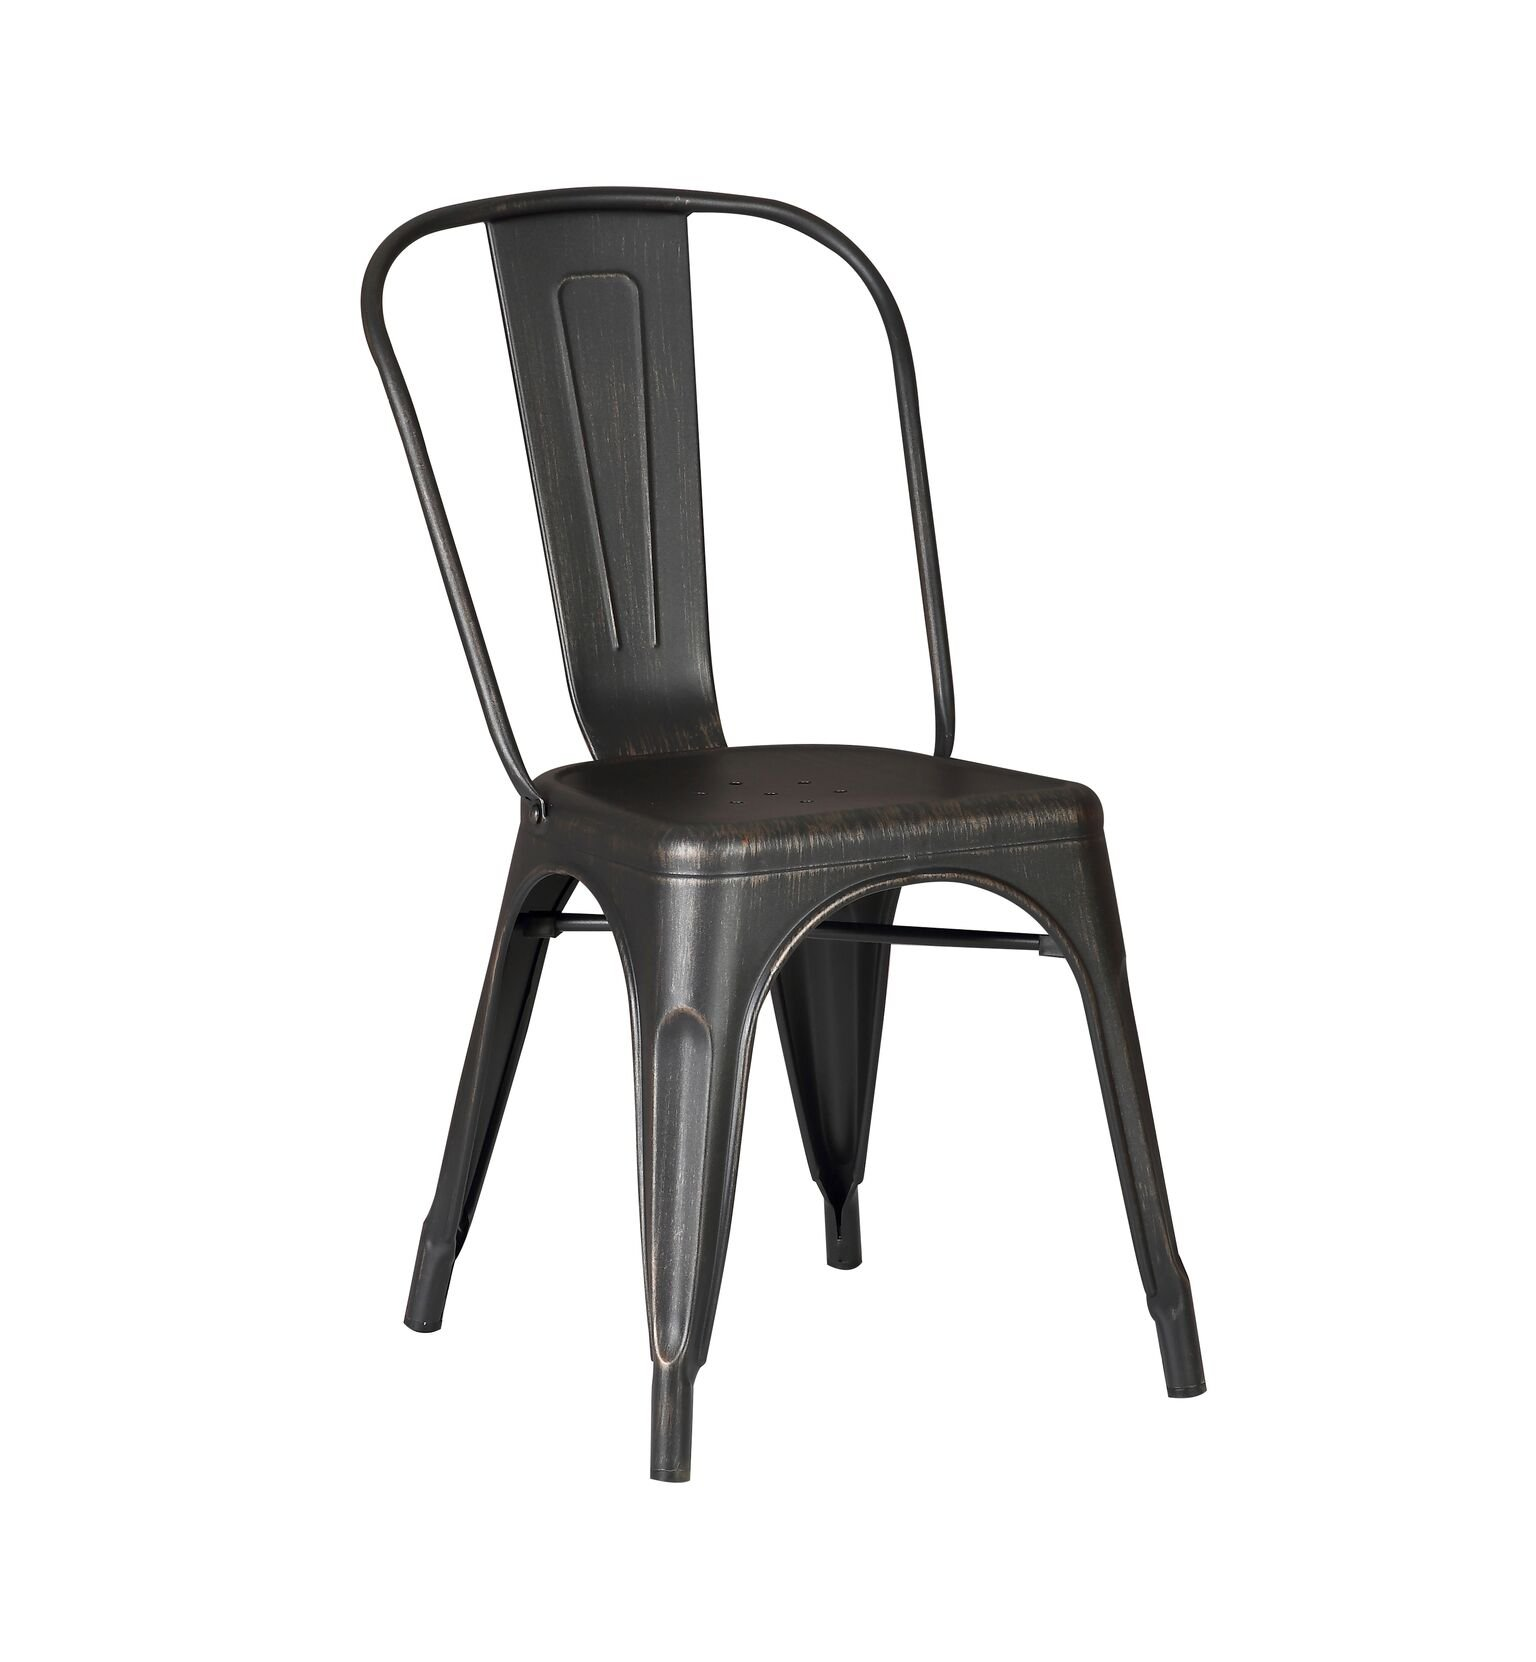 AC Pacific Cole Collection Modern Style Metal Dining Room Kitchen Bar Chairs (Set of 2), Distressed Black